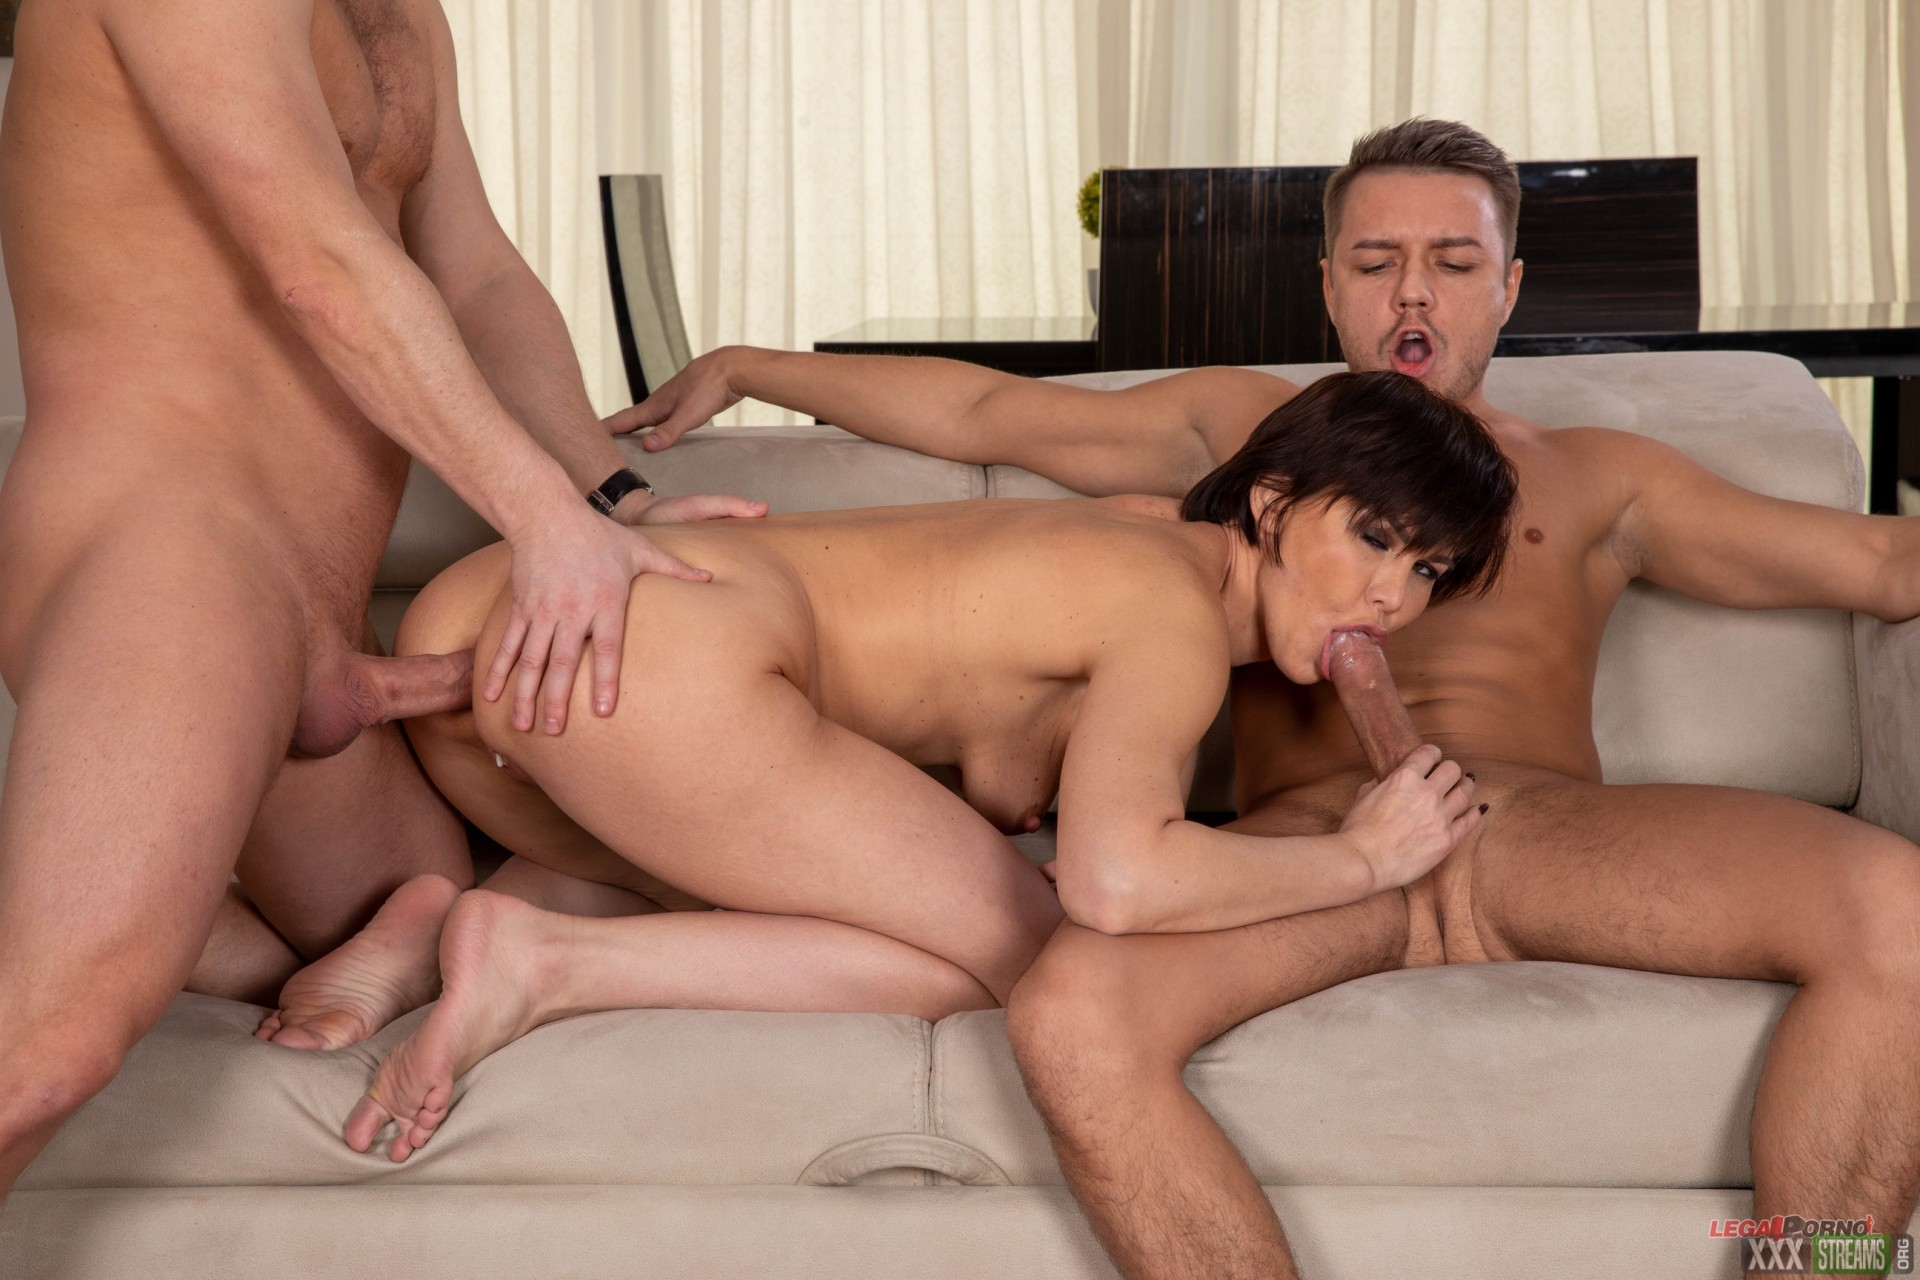 [LegalPorno.com] Russian MILF Inna, welcome to Porn with Balls Deep Anal, DP, Gapes and Swallow GL153 (2020)